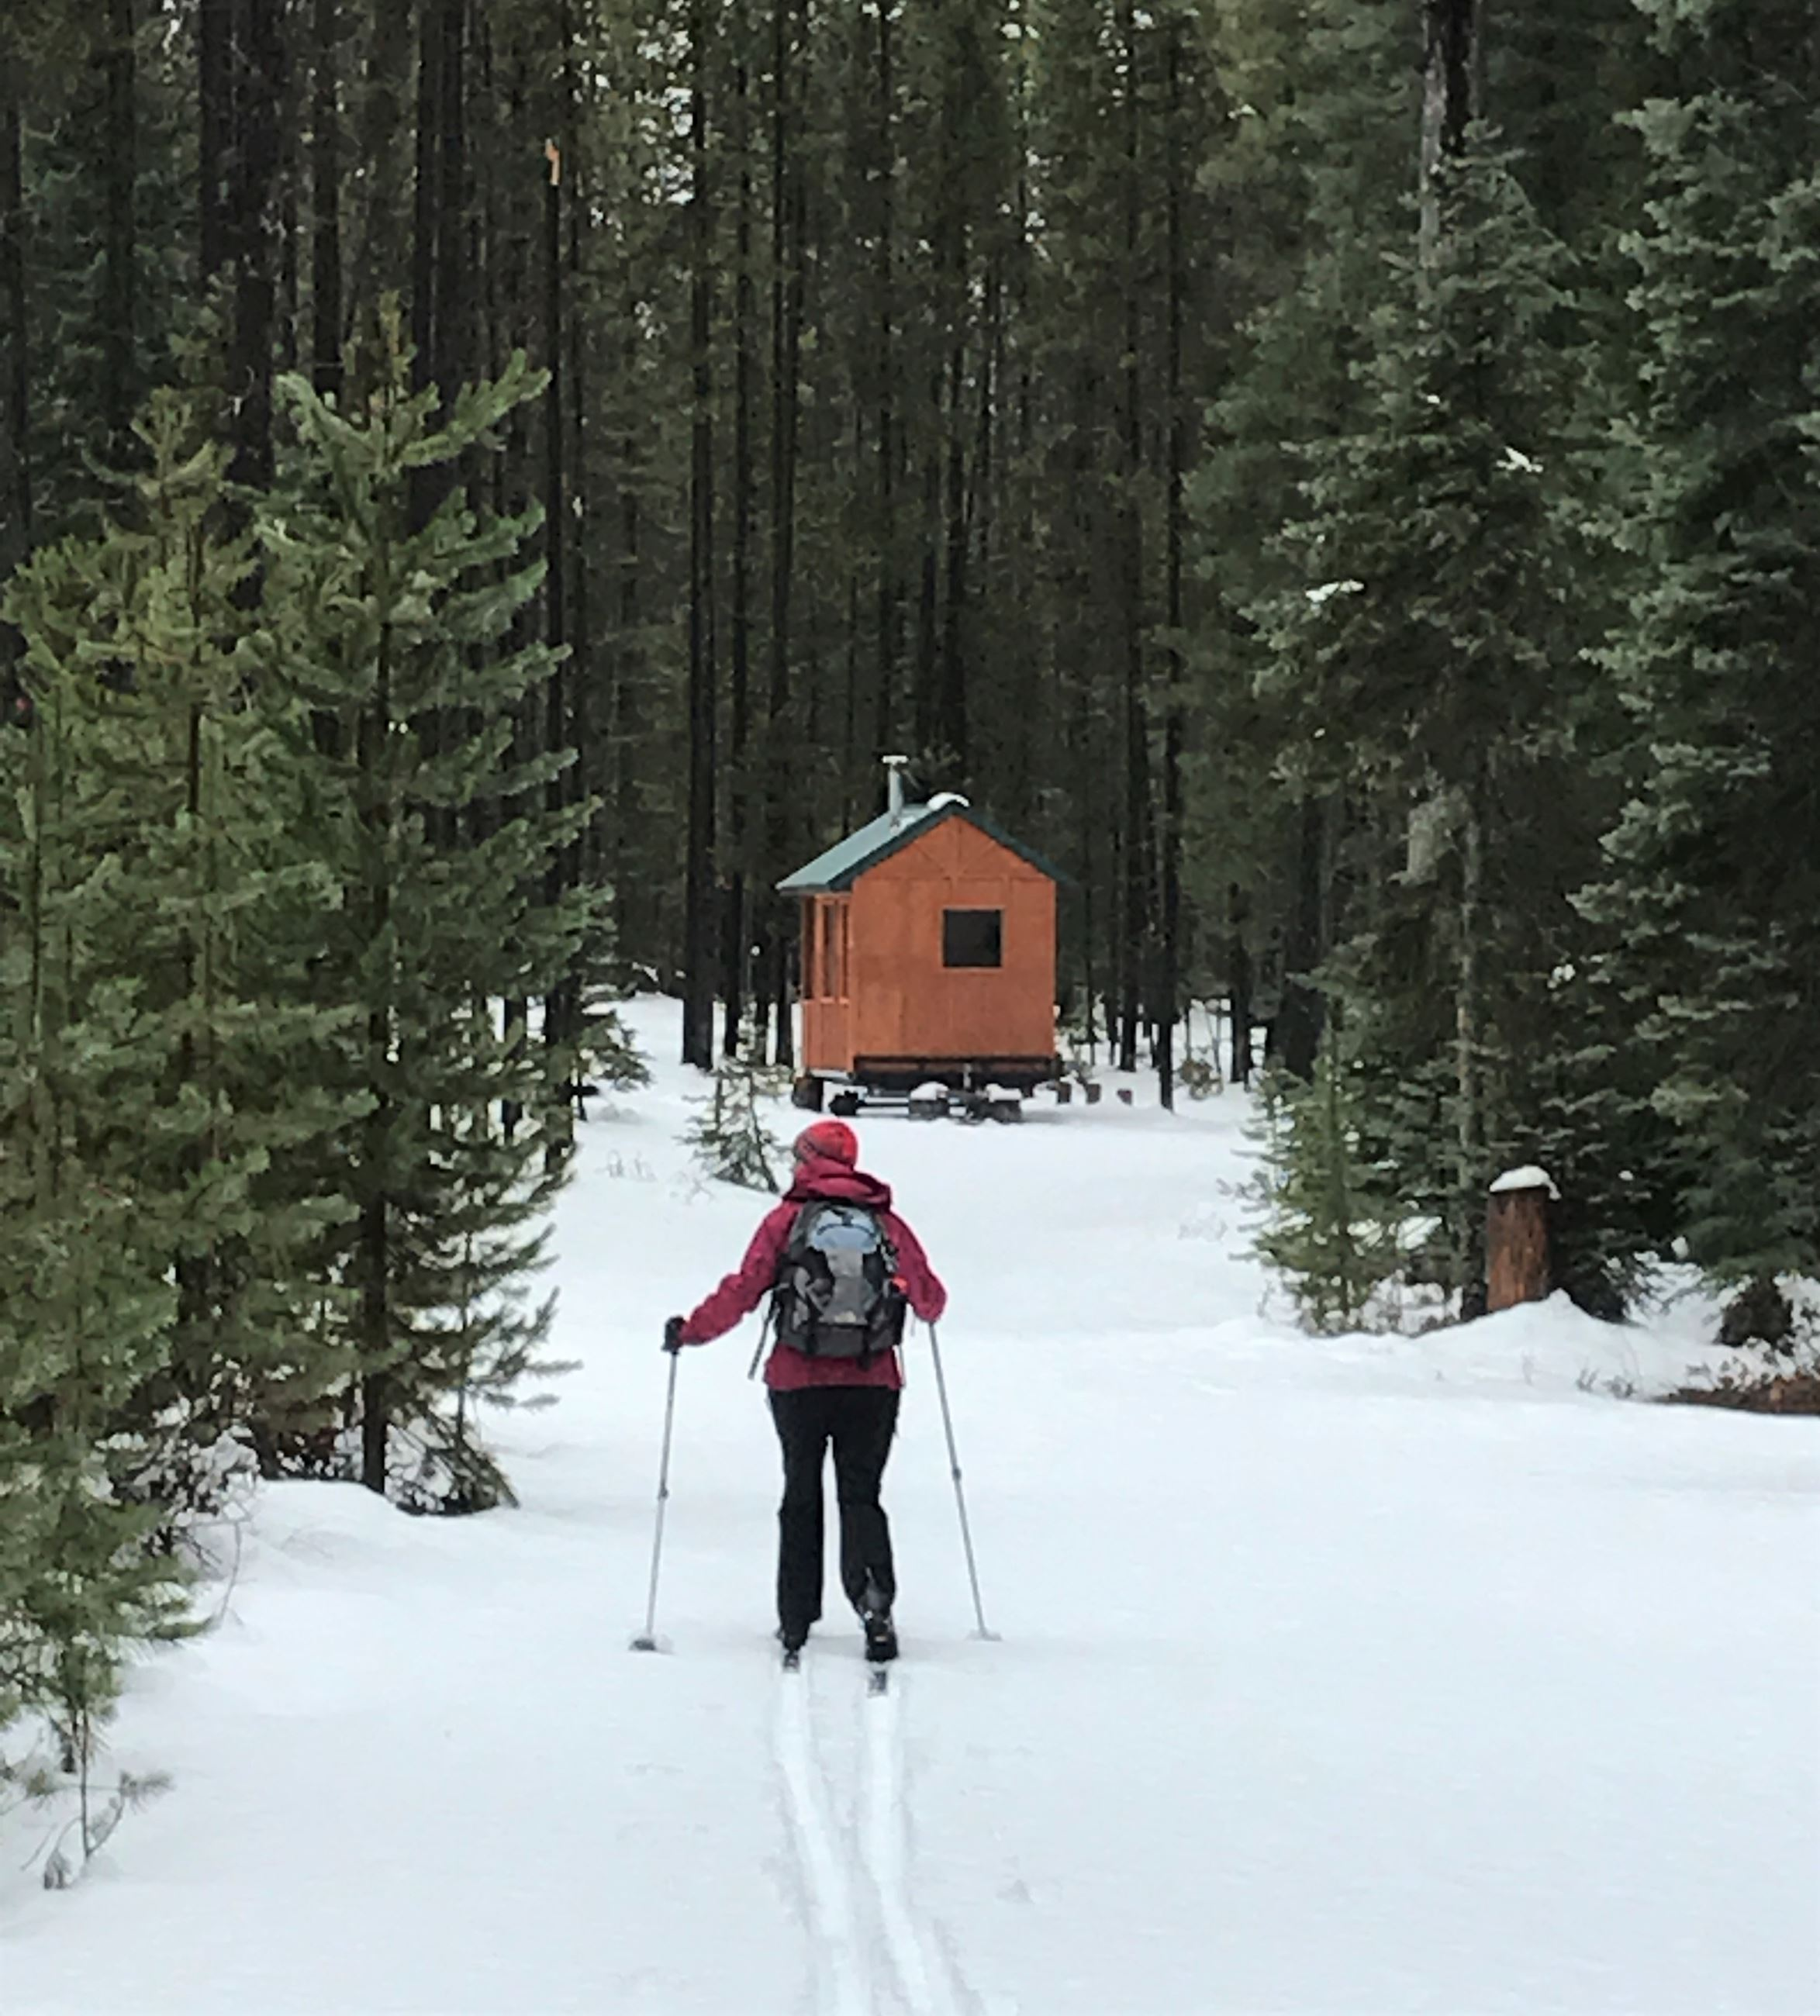 11.18.20 WR Bumping Lake warming hut